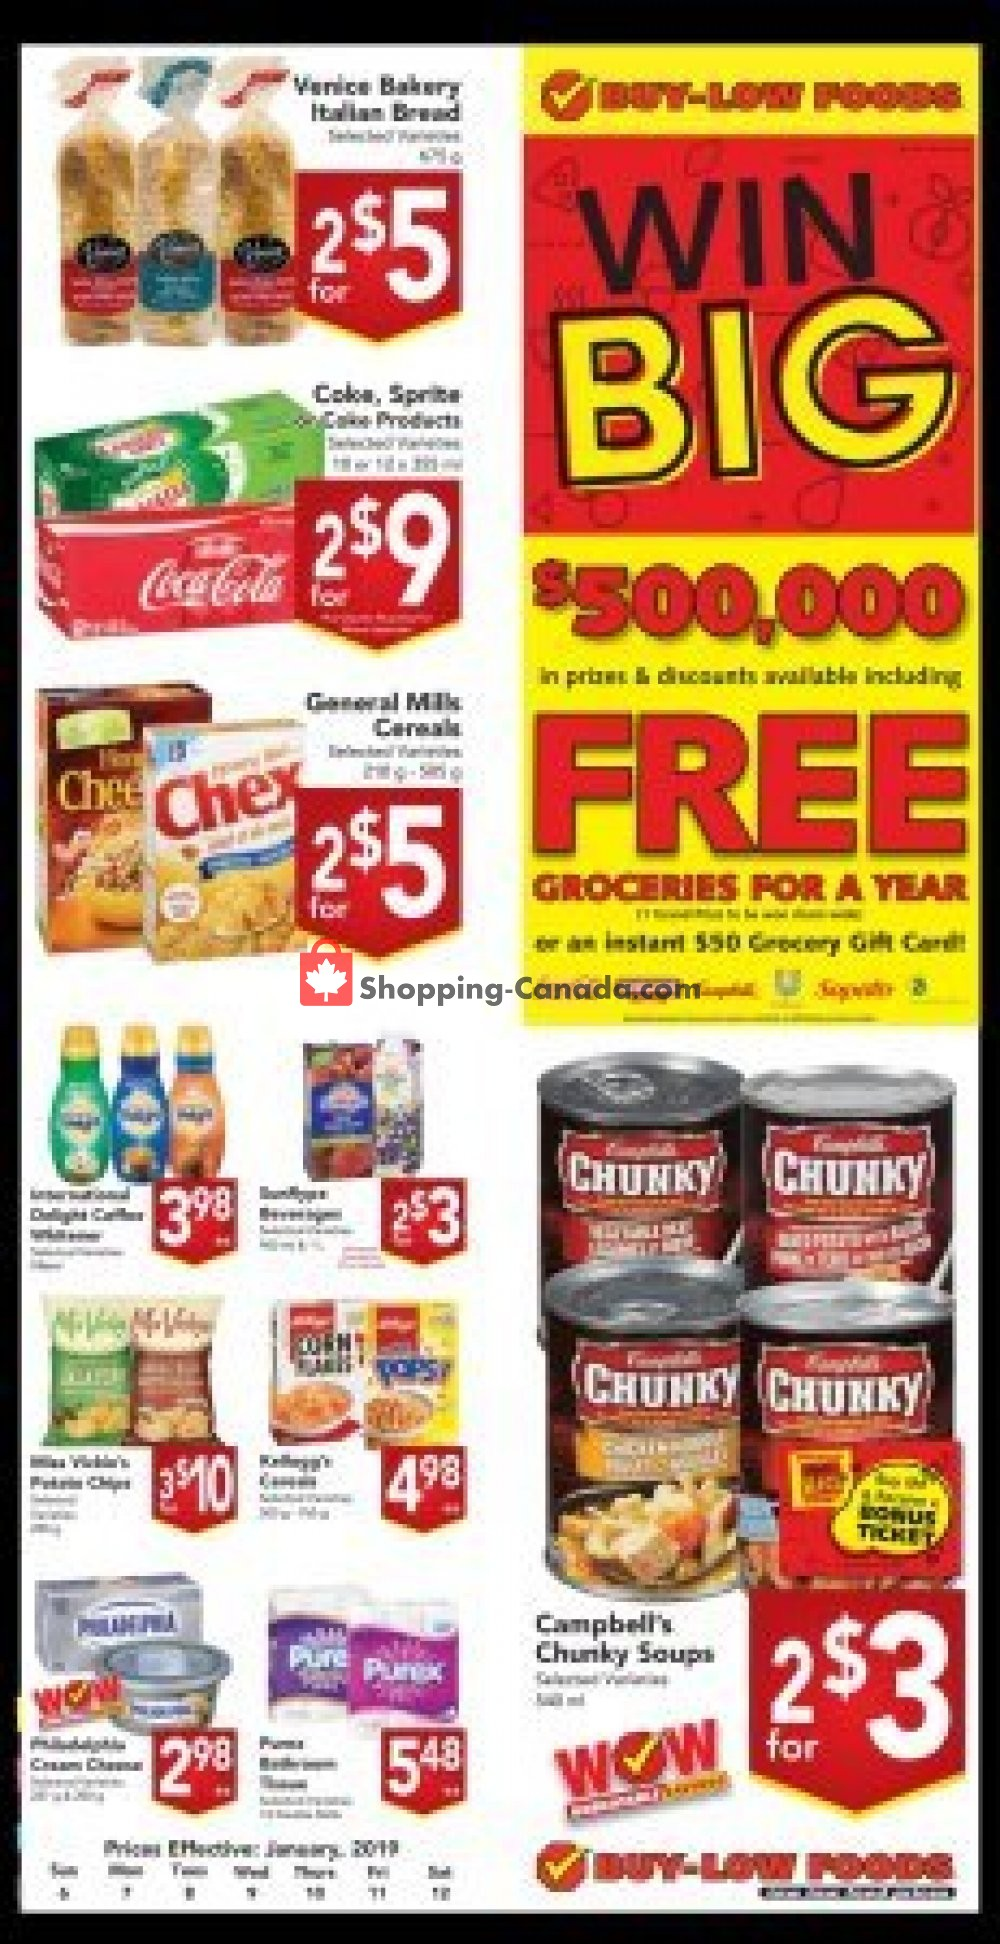 Flyer and weekly ads: Buy-Low Foods Canada - (Win Big